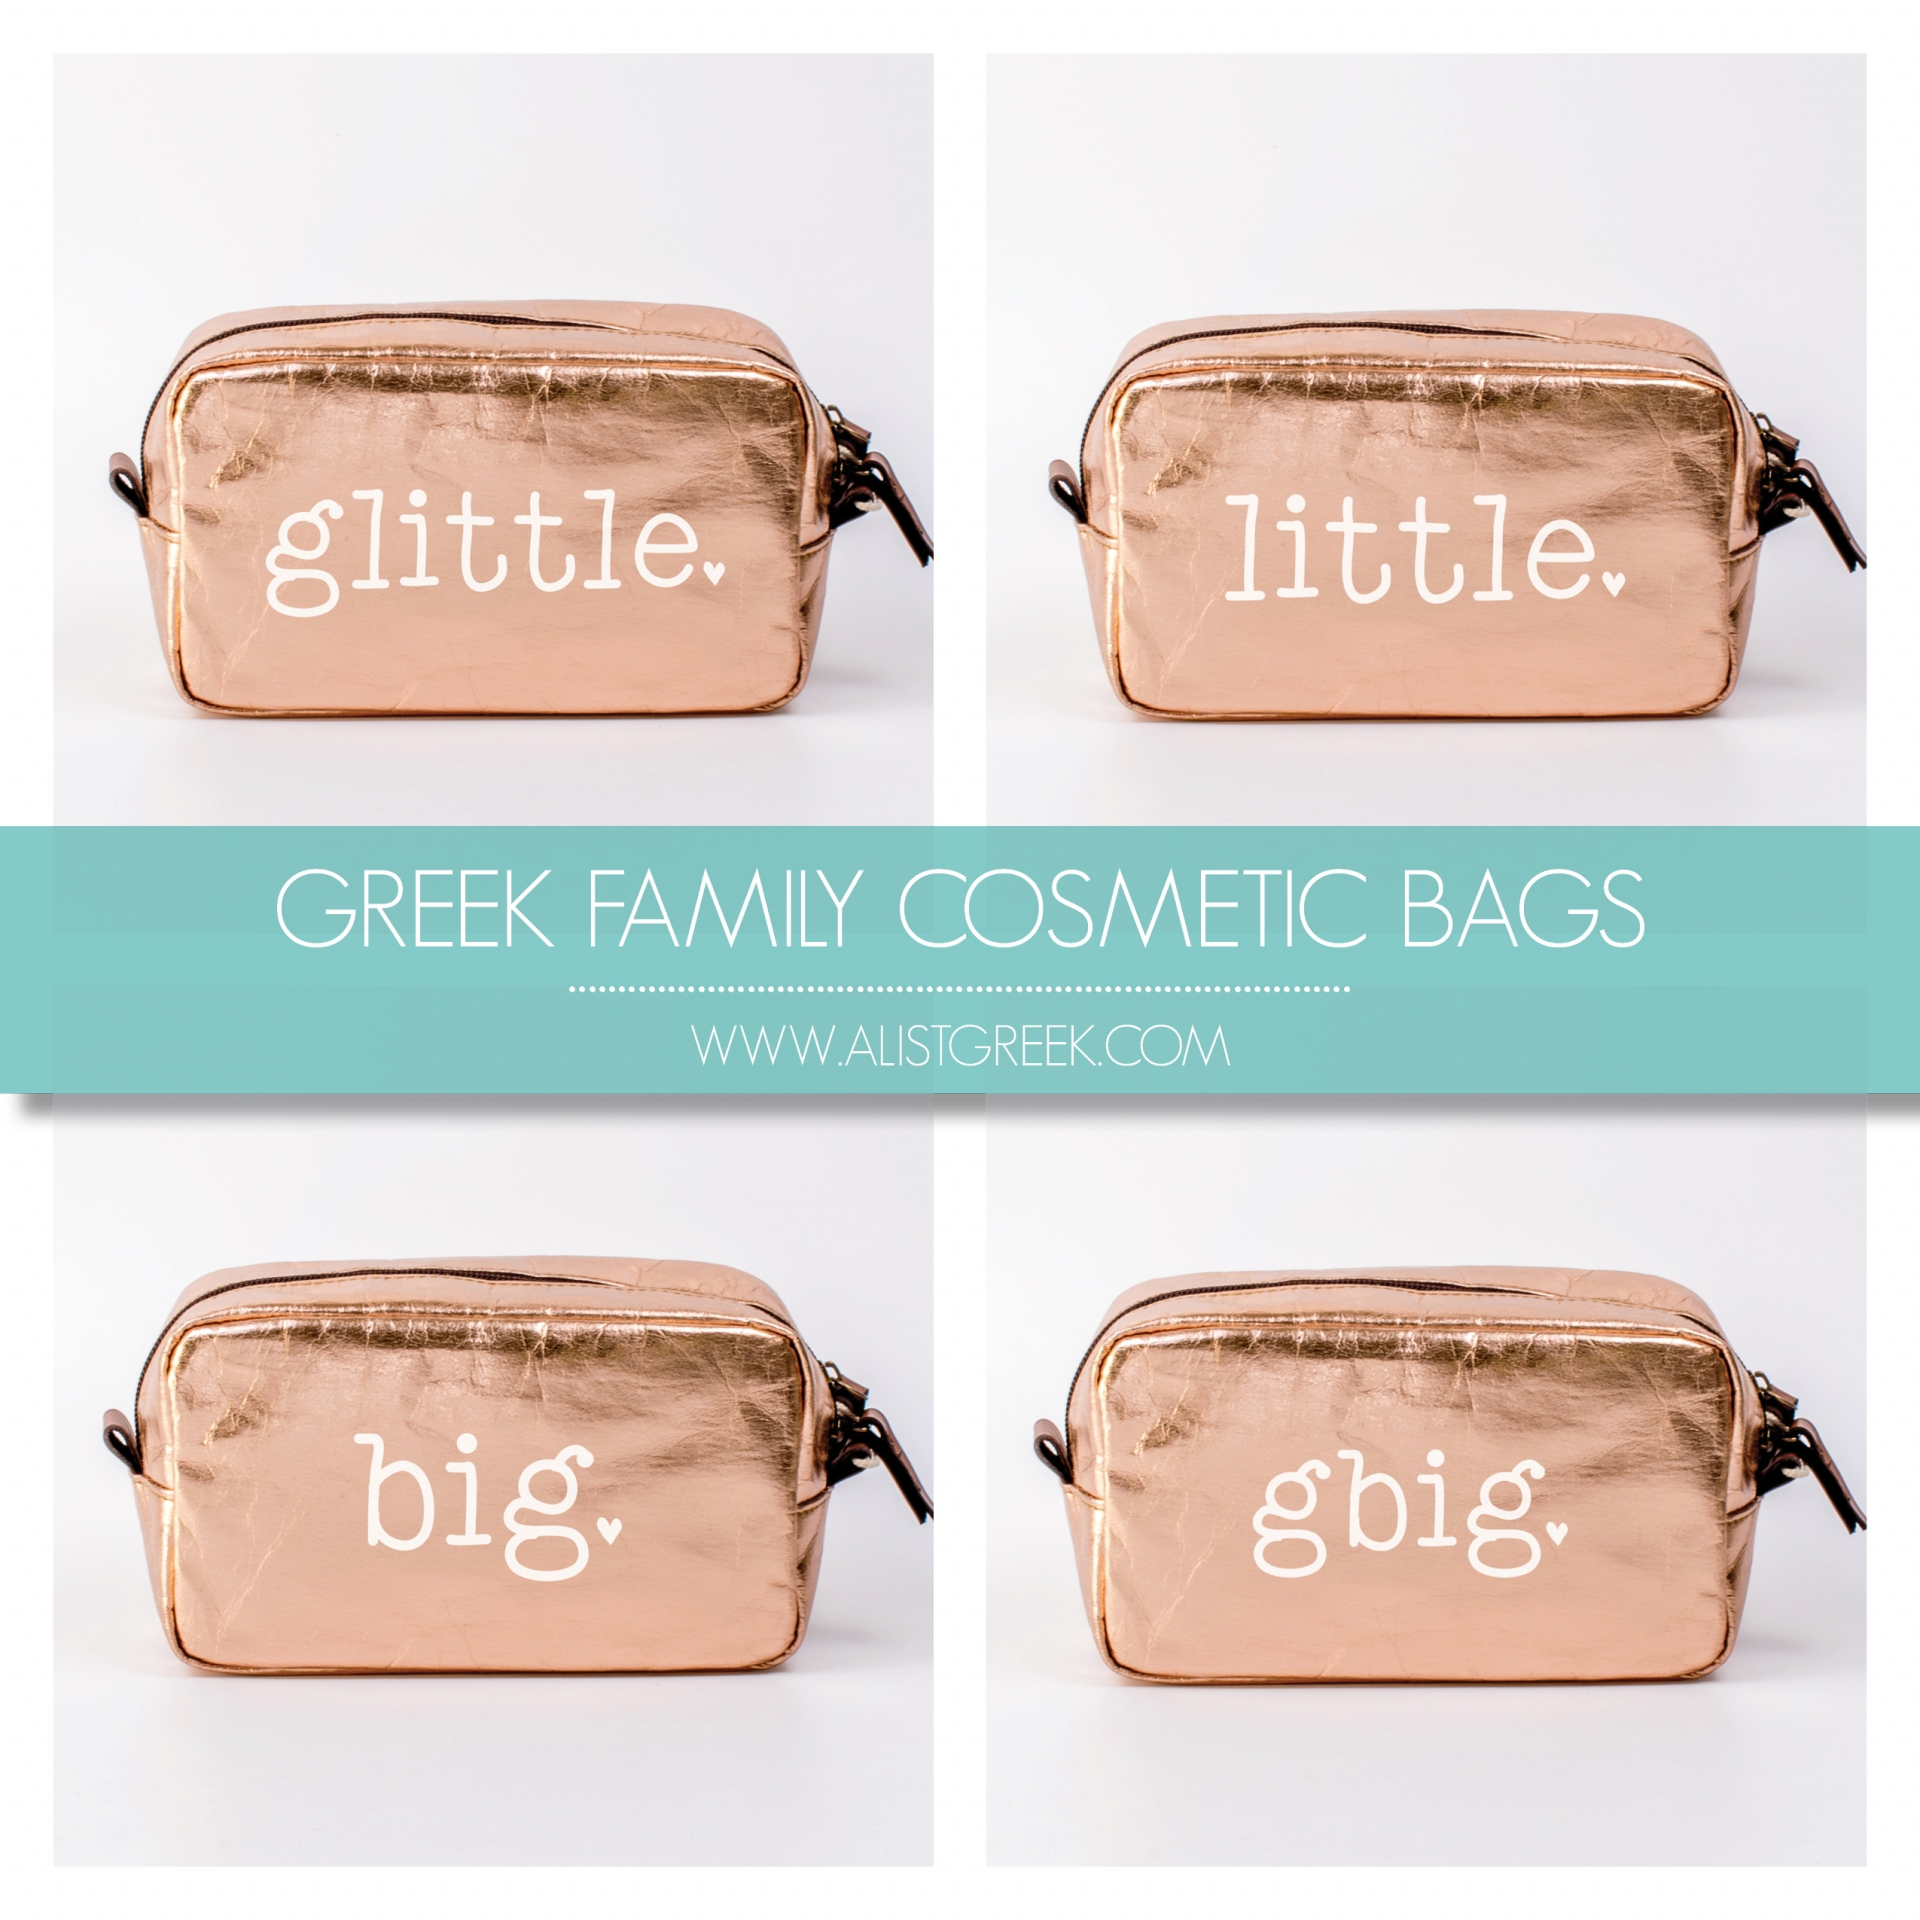 Greek Family Cosmetic Bags from www.alistgreek.com